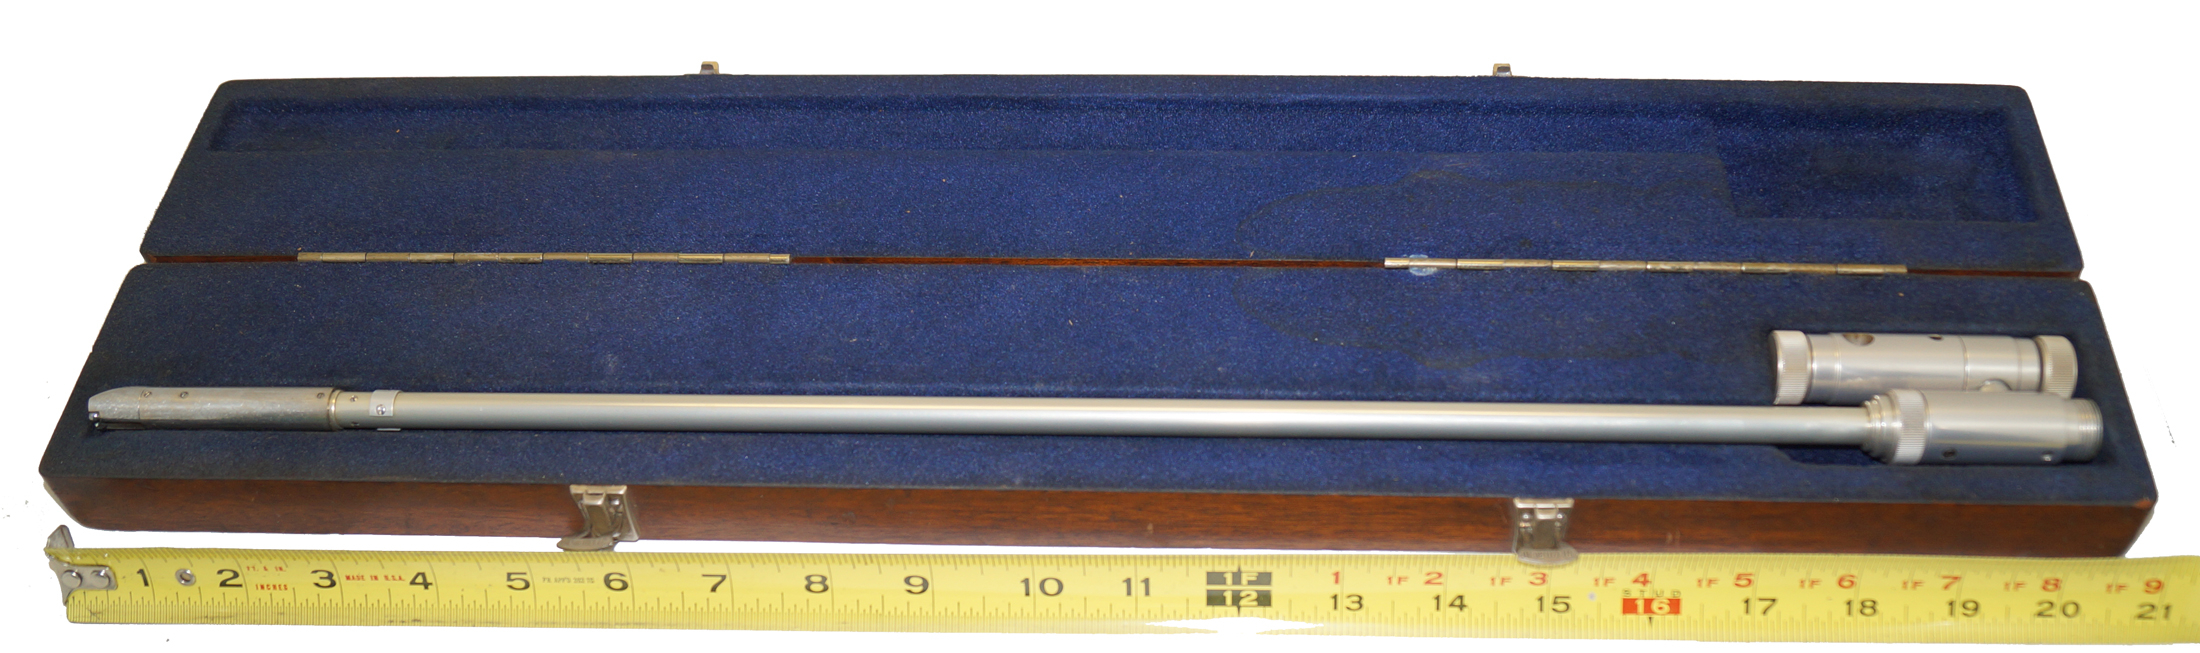 Profilometer Probe Micro Mechanical LE-4-57